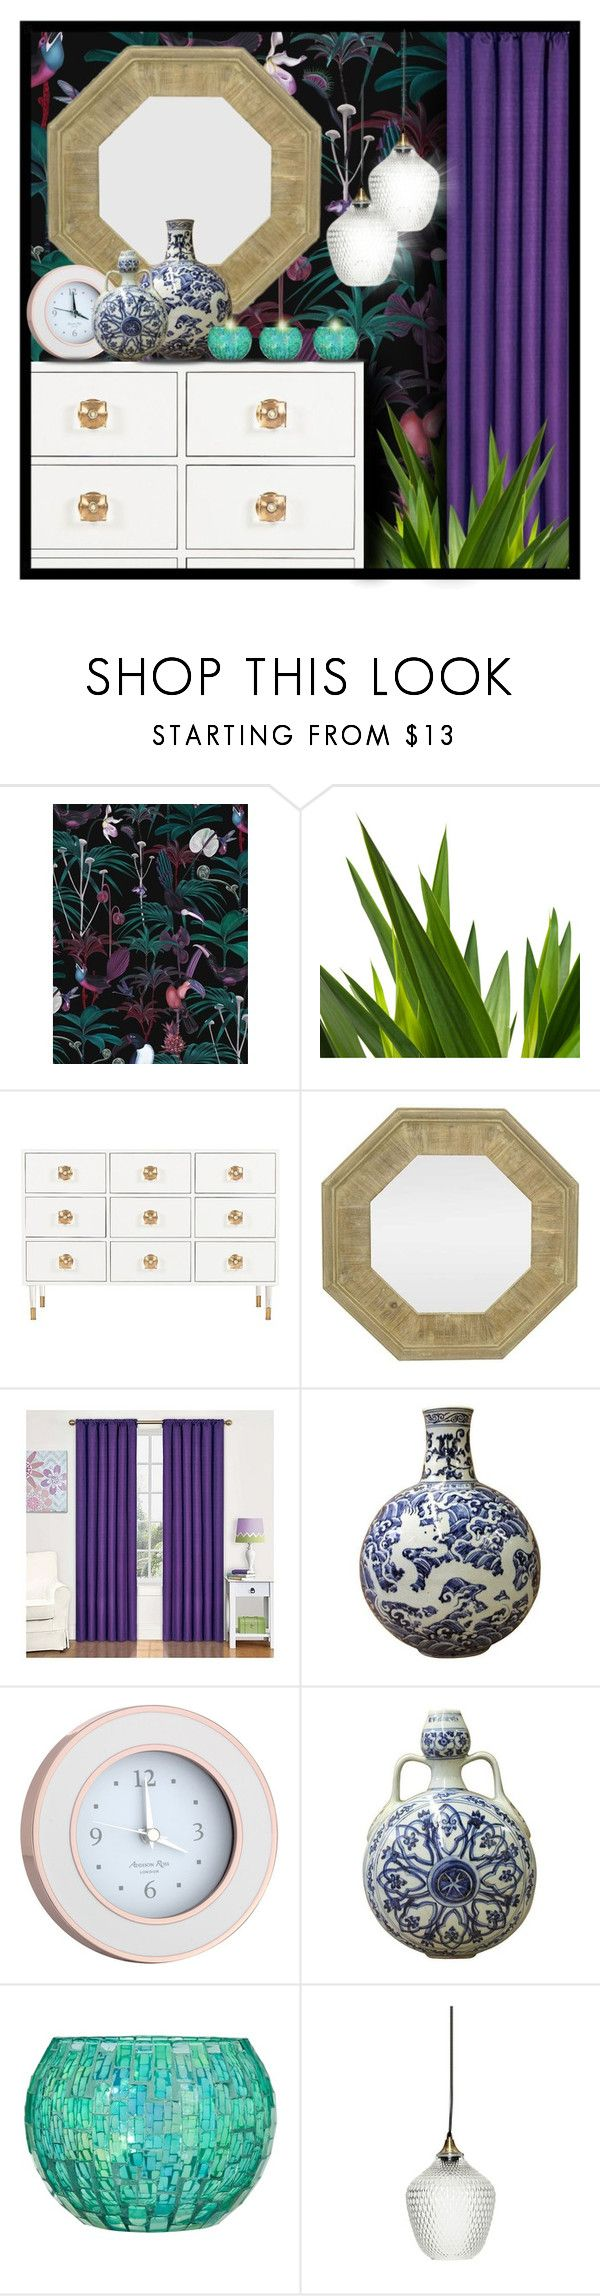 """""""Dark Walls"""" by suzanne228 ❤ liked on Polyvore featuring interior, interiors, interior design, home, home decor, interior decorating, Witch & Watchman, Three Hands, Eclipse and Addison Ross"""